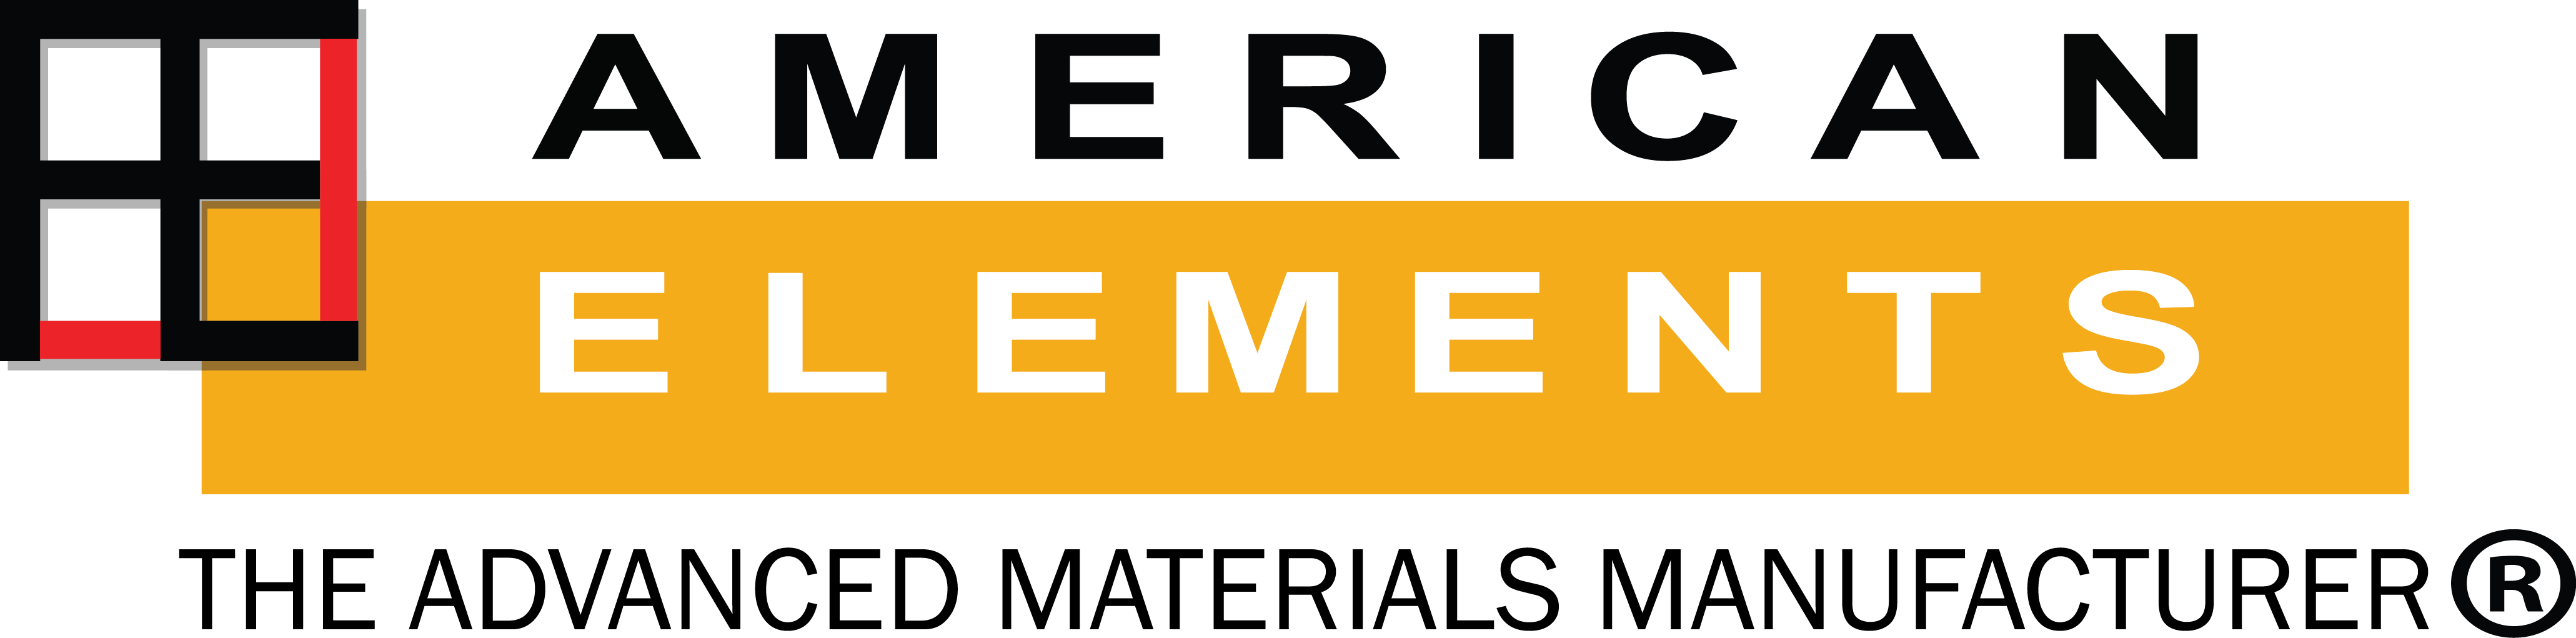 american elements metals alloys nanomaterials composites advanced engineering materials